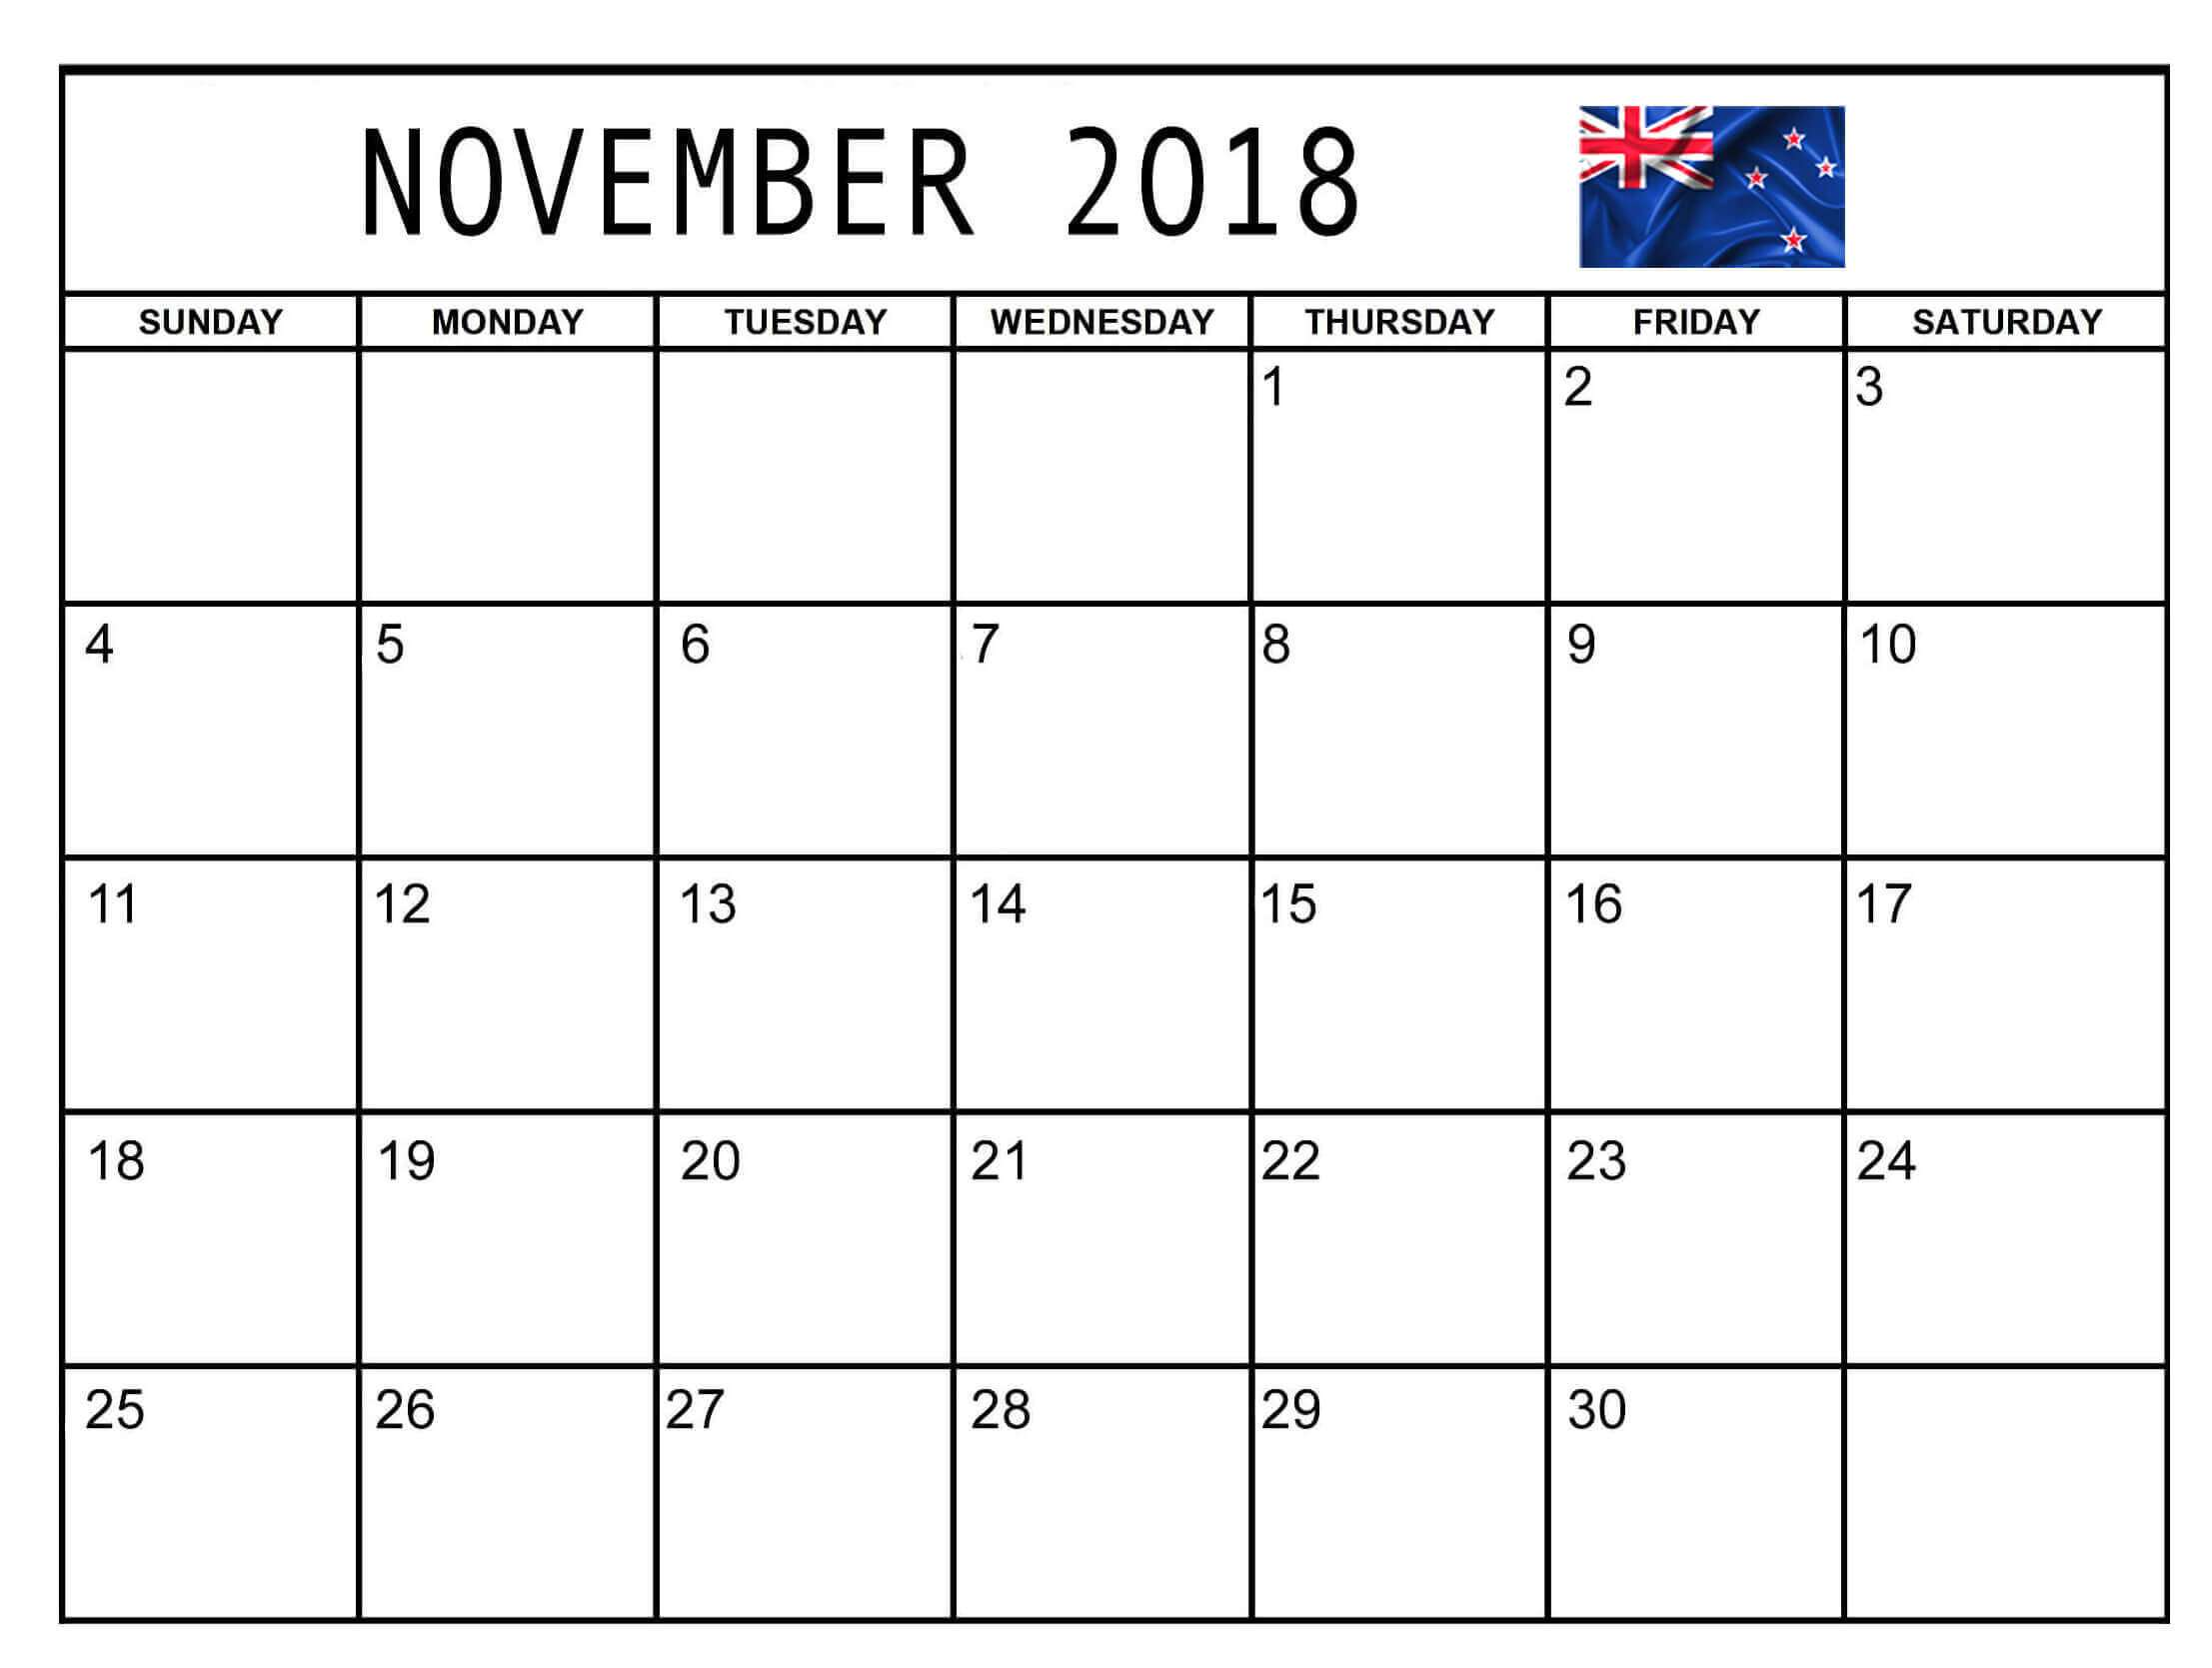 November 2018 Calendar Nz Public Holidays